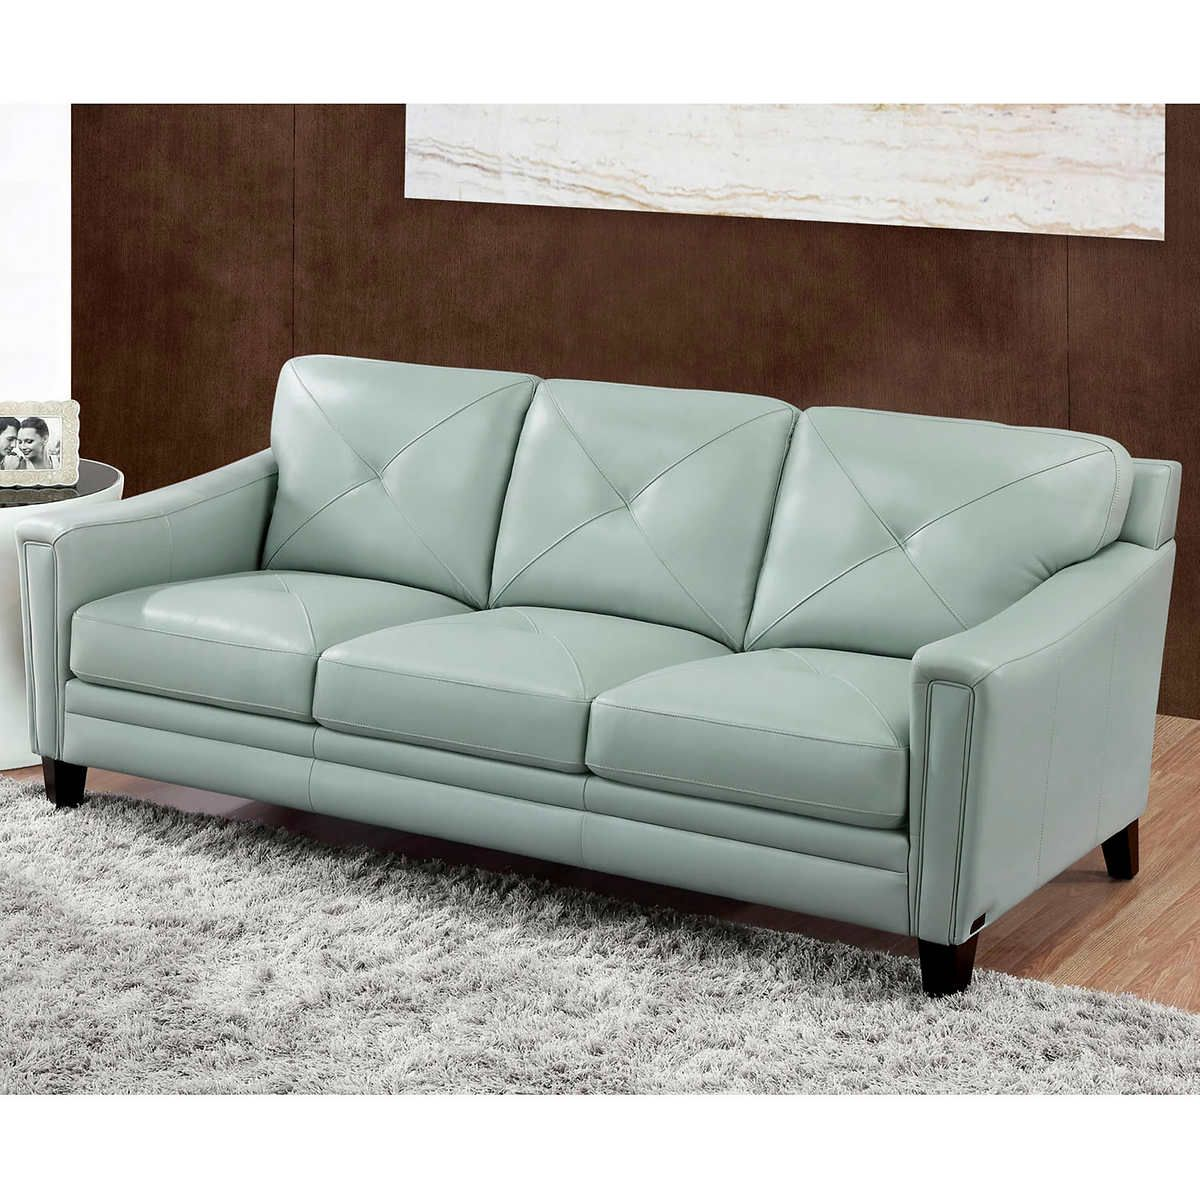 Pin By James Giel On Sofa In 2020 Blue Leather Sofa Light Blue Leather Couch Top Grain Leather Sofa